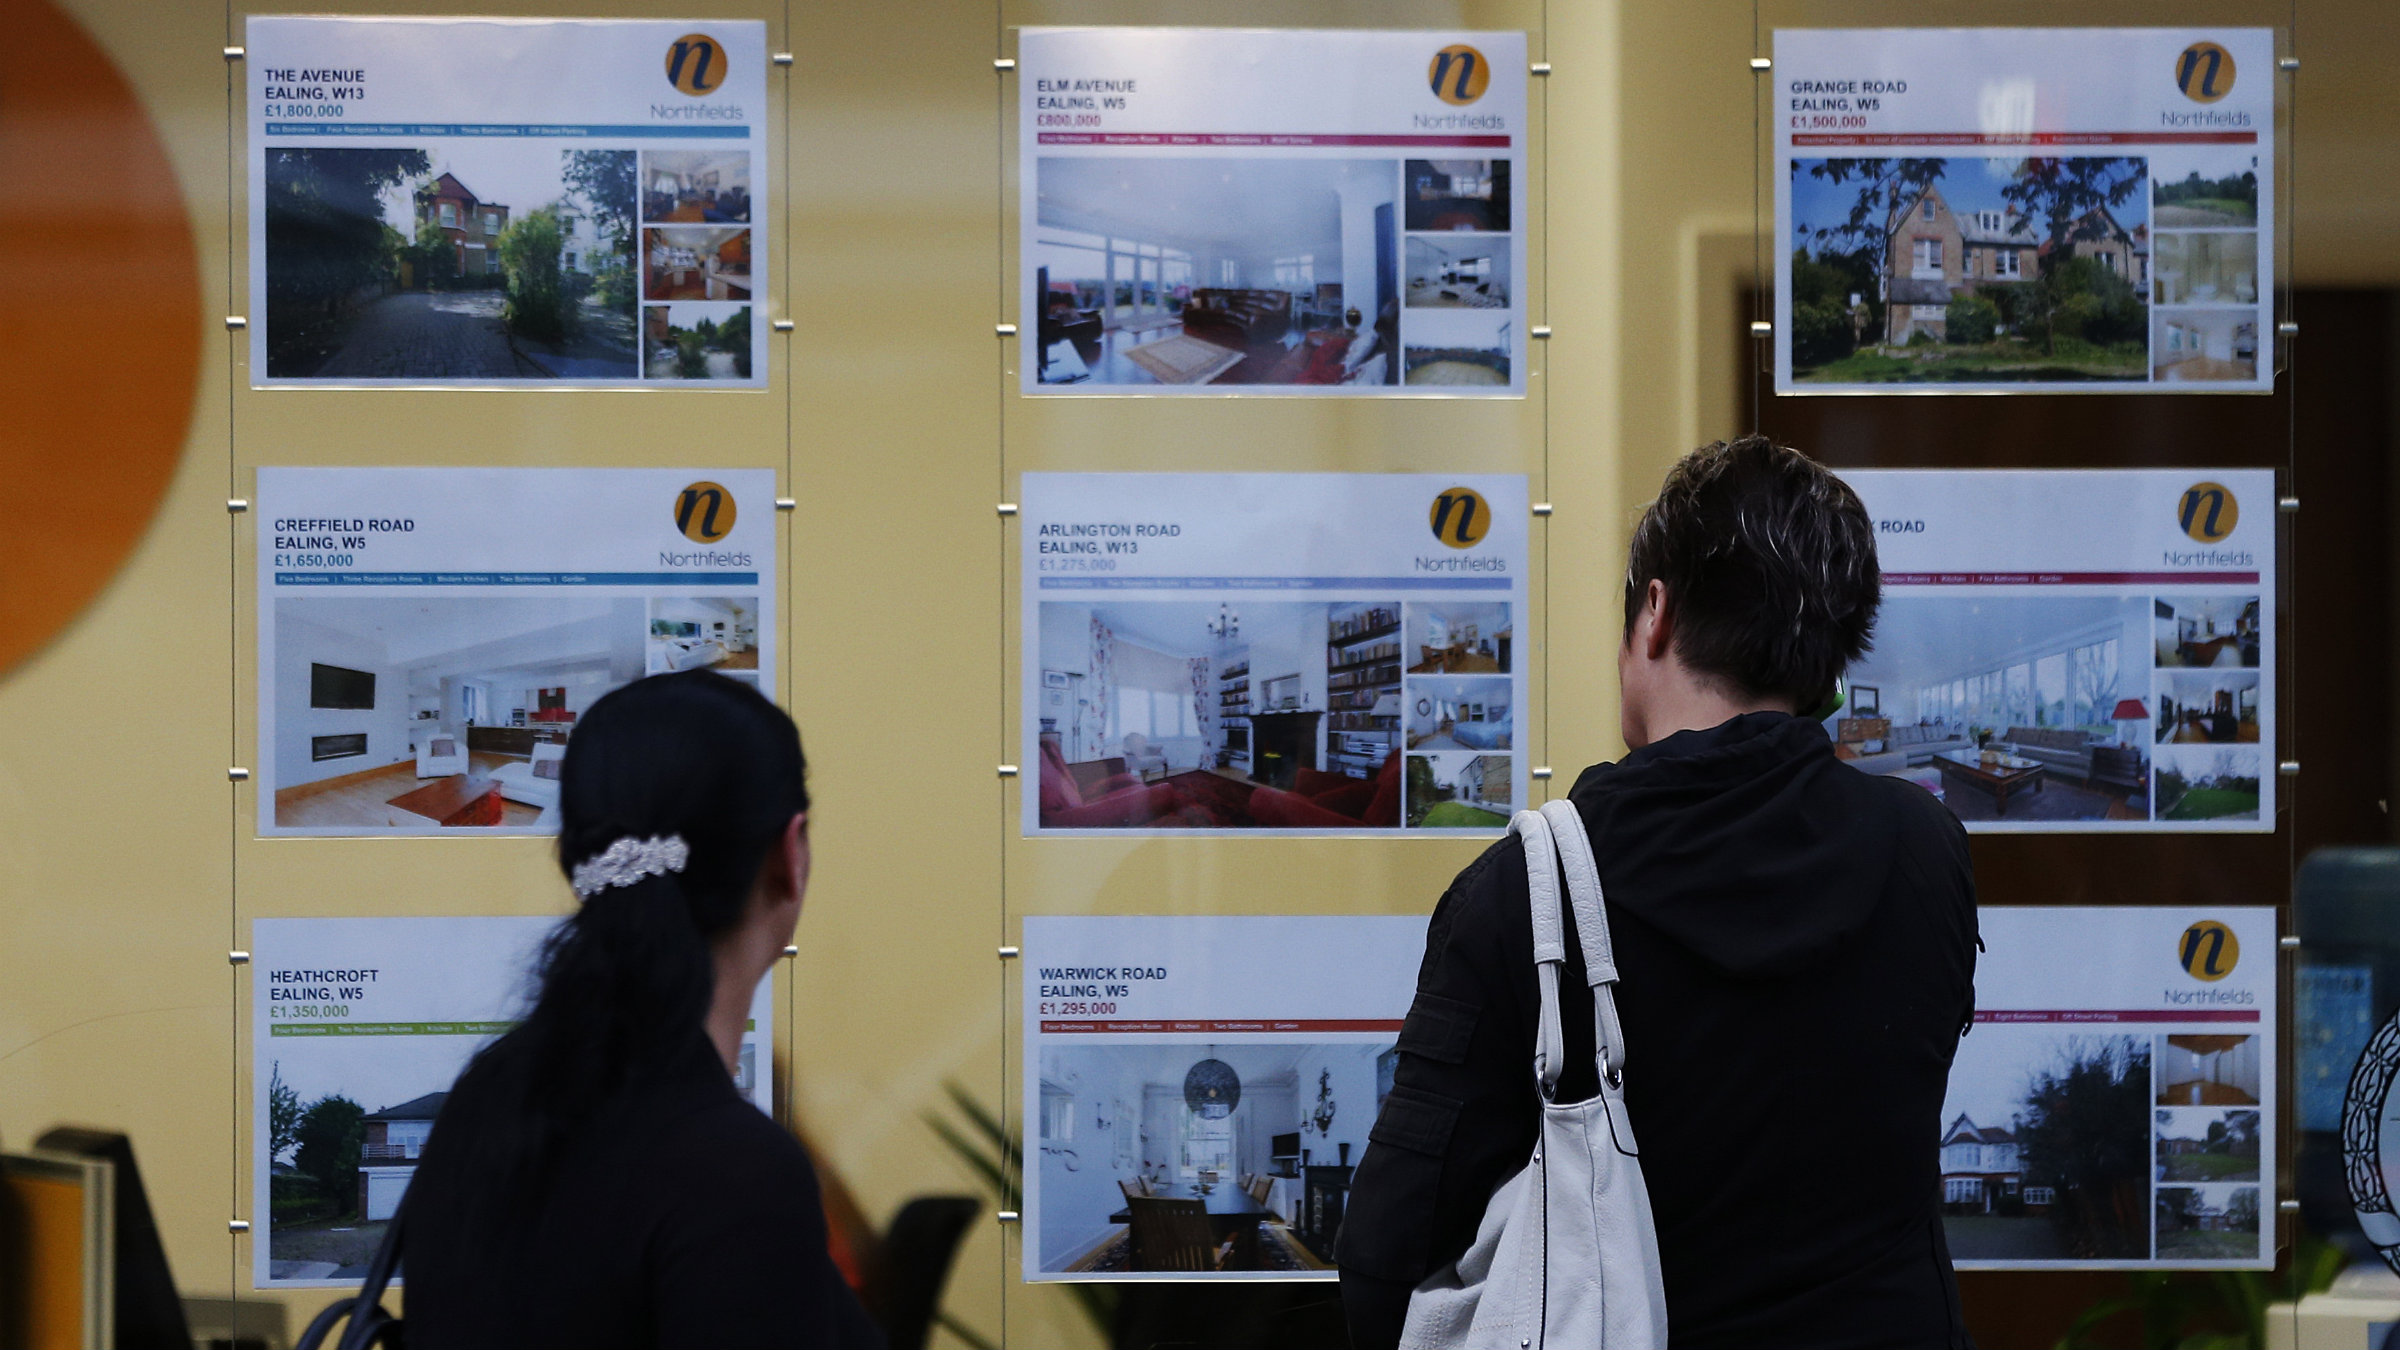 People look at houses for sale advertised in an estate agent's window in London.